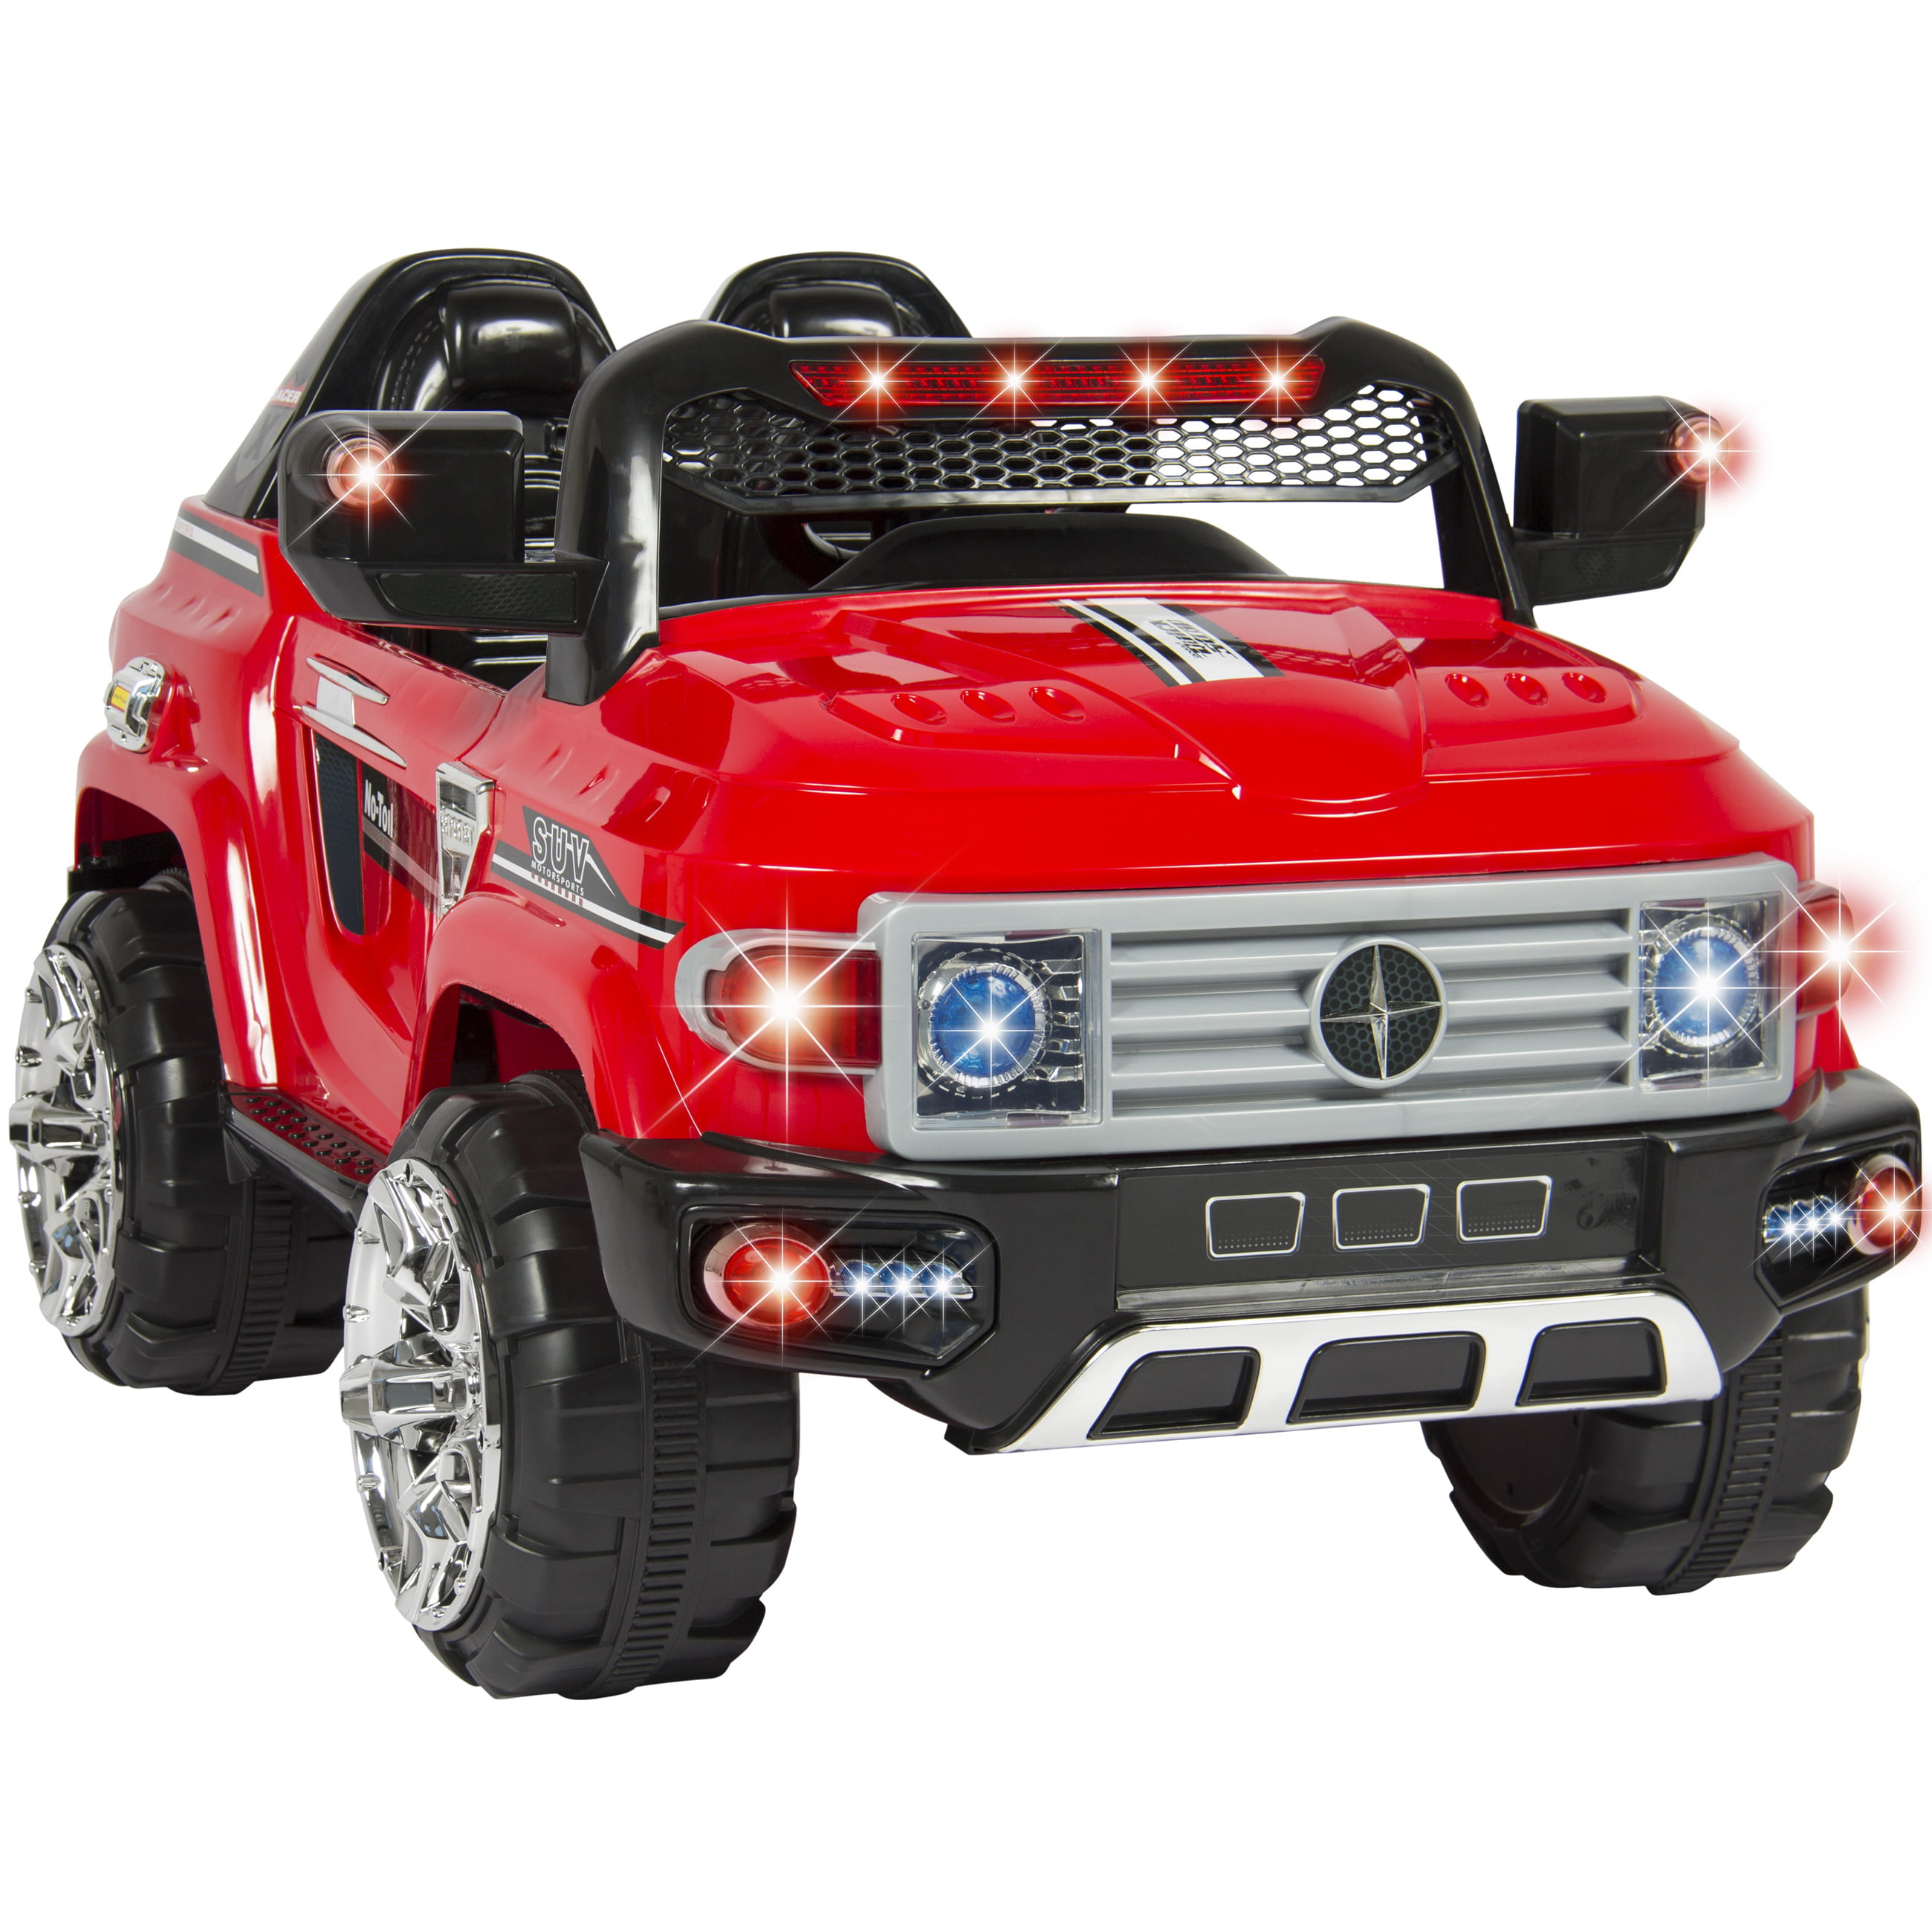 Best Choice Products 12V MP3 Kids Ride on Truck Car R c Remote Control, LED Lights, AUX... by Best Choice Products